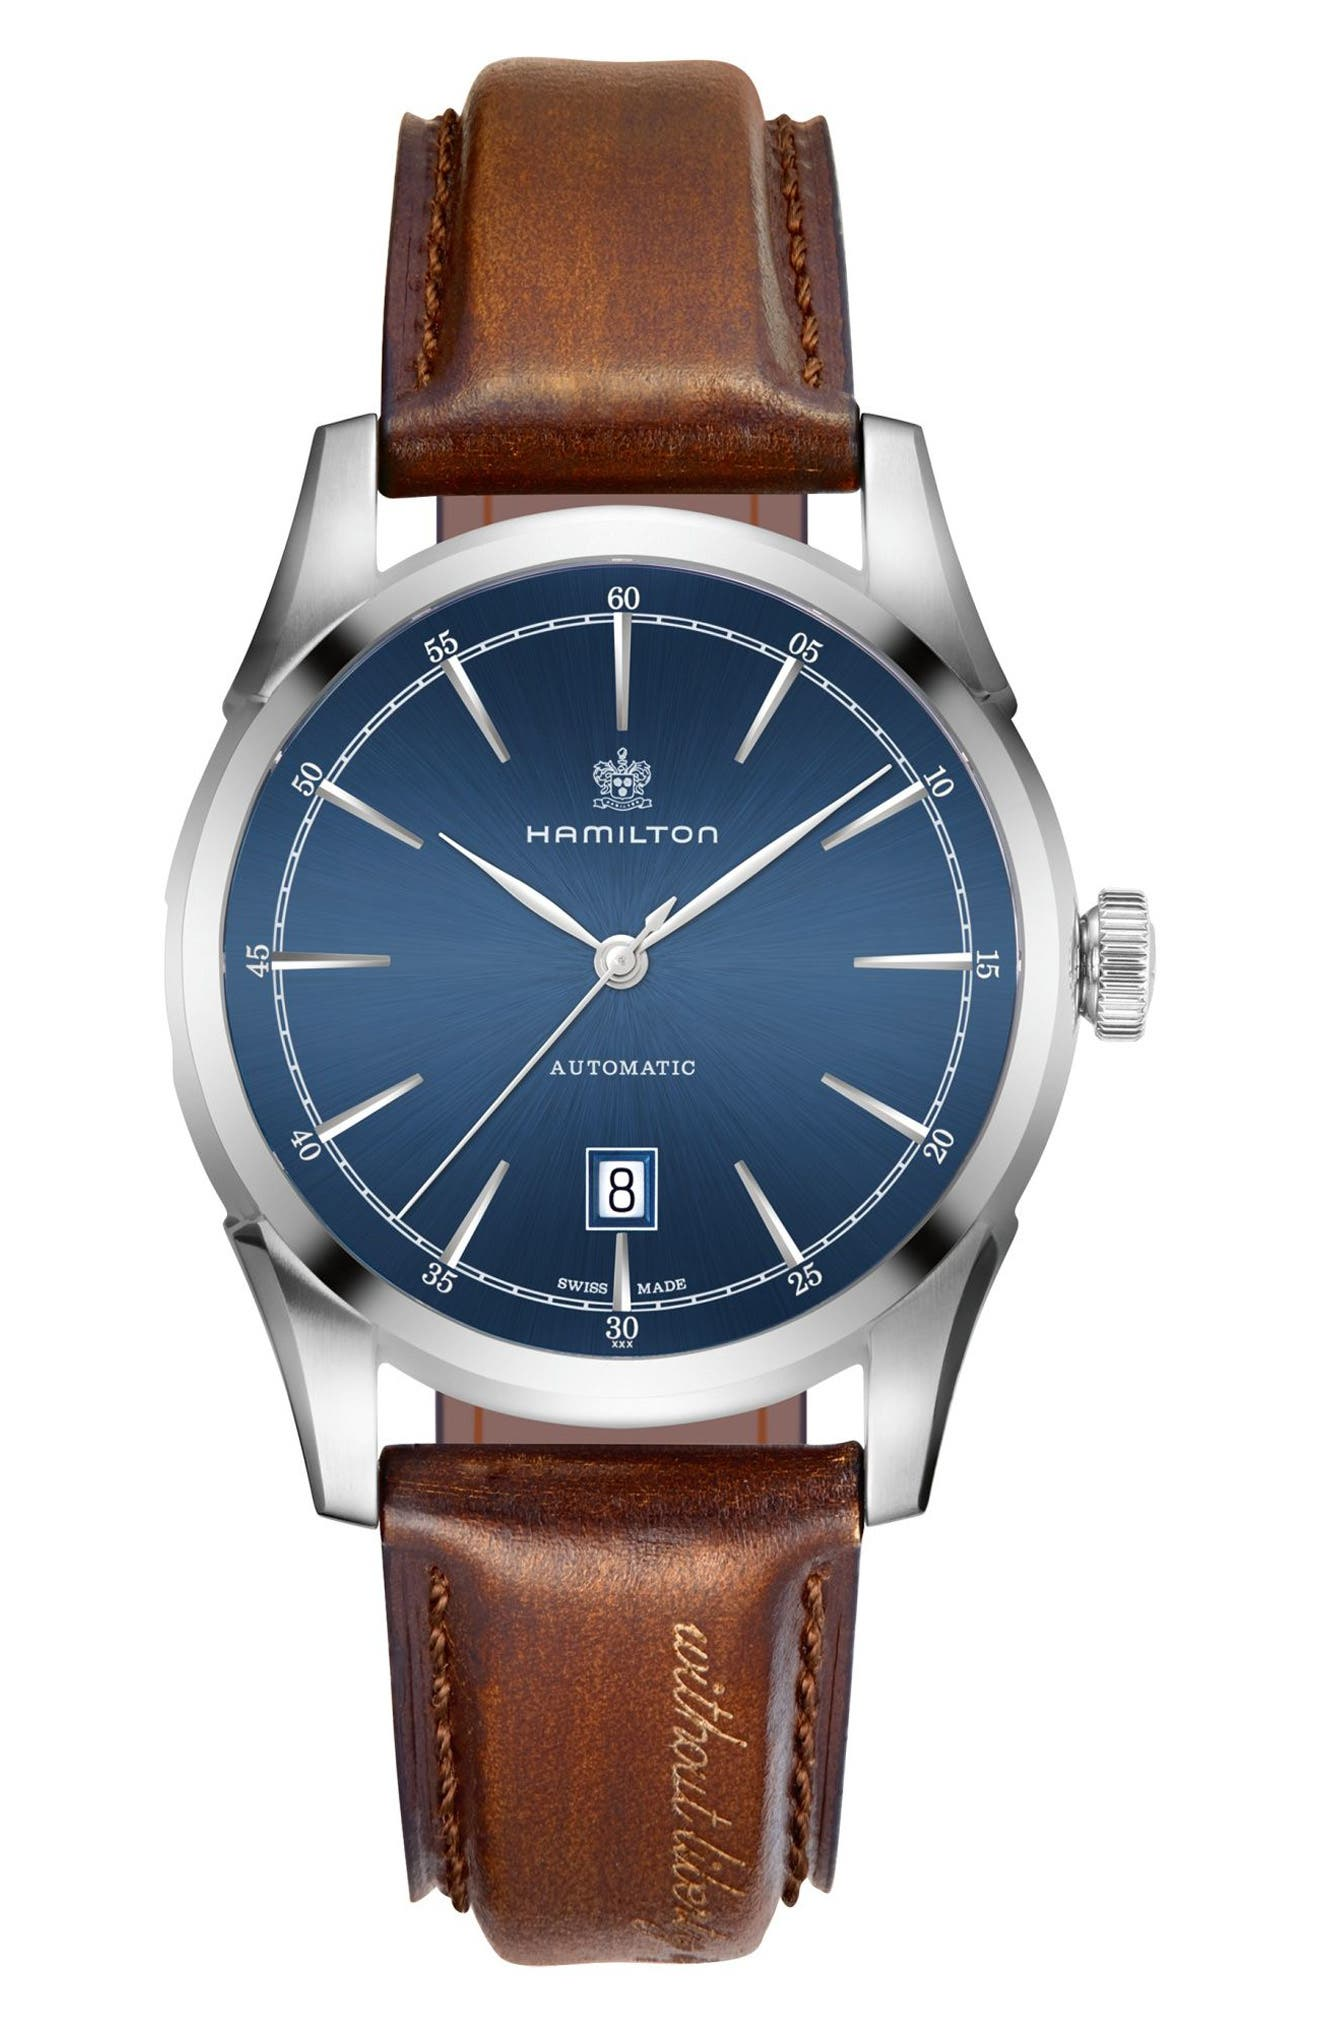 Hamilton Spirit of Liberty Automatic Leather Strap Watch, 42mm